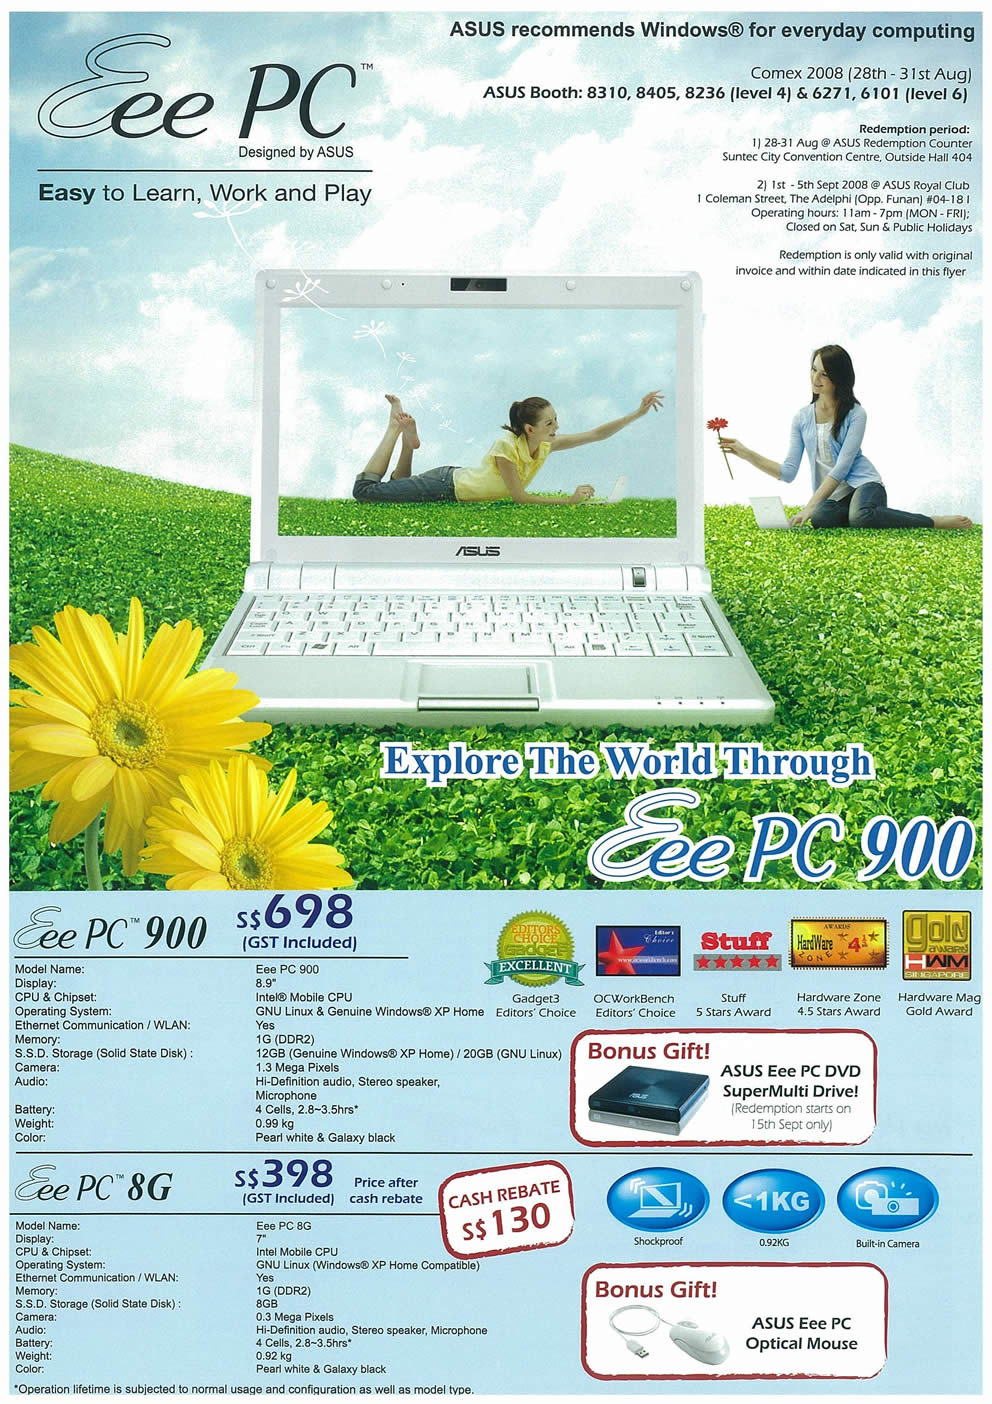 Comex 2008 price list image brochure of ASUS Eee PC Page 1